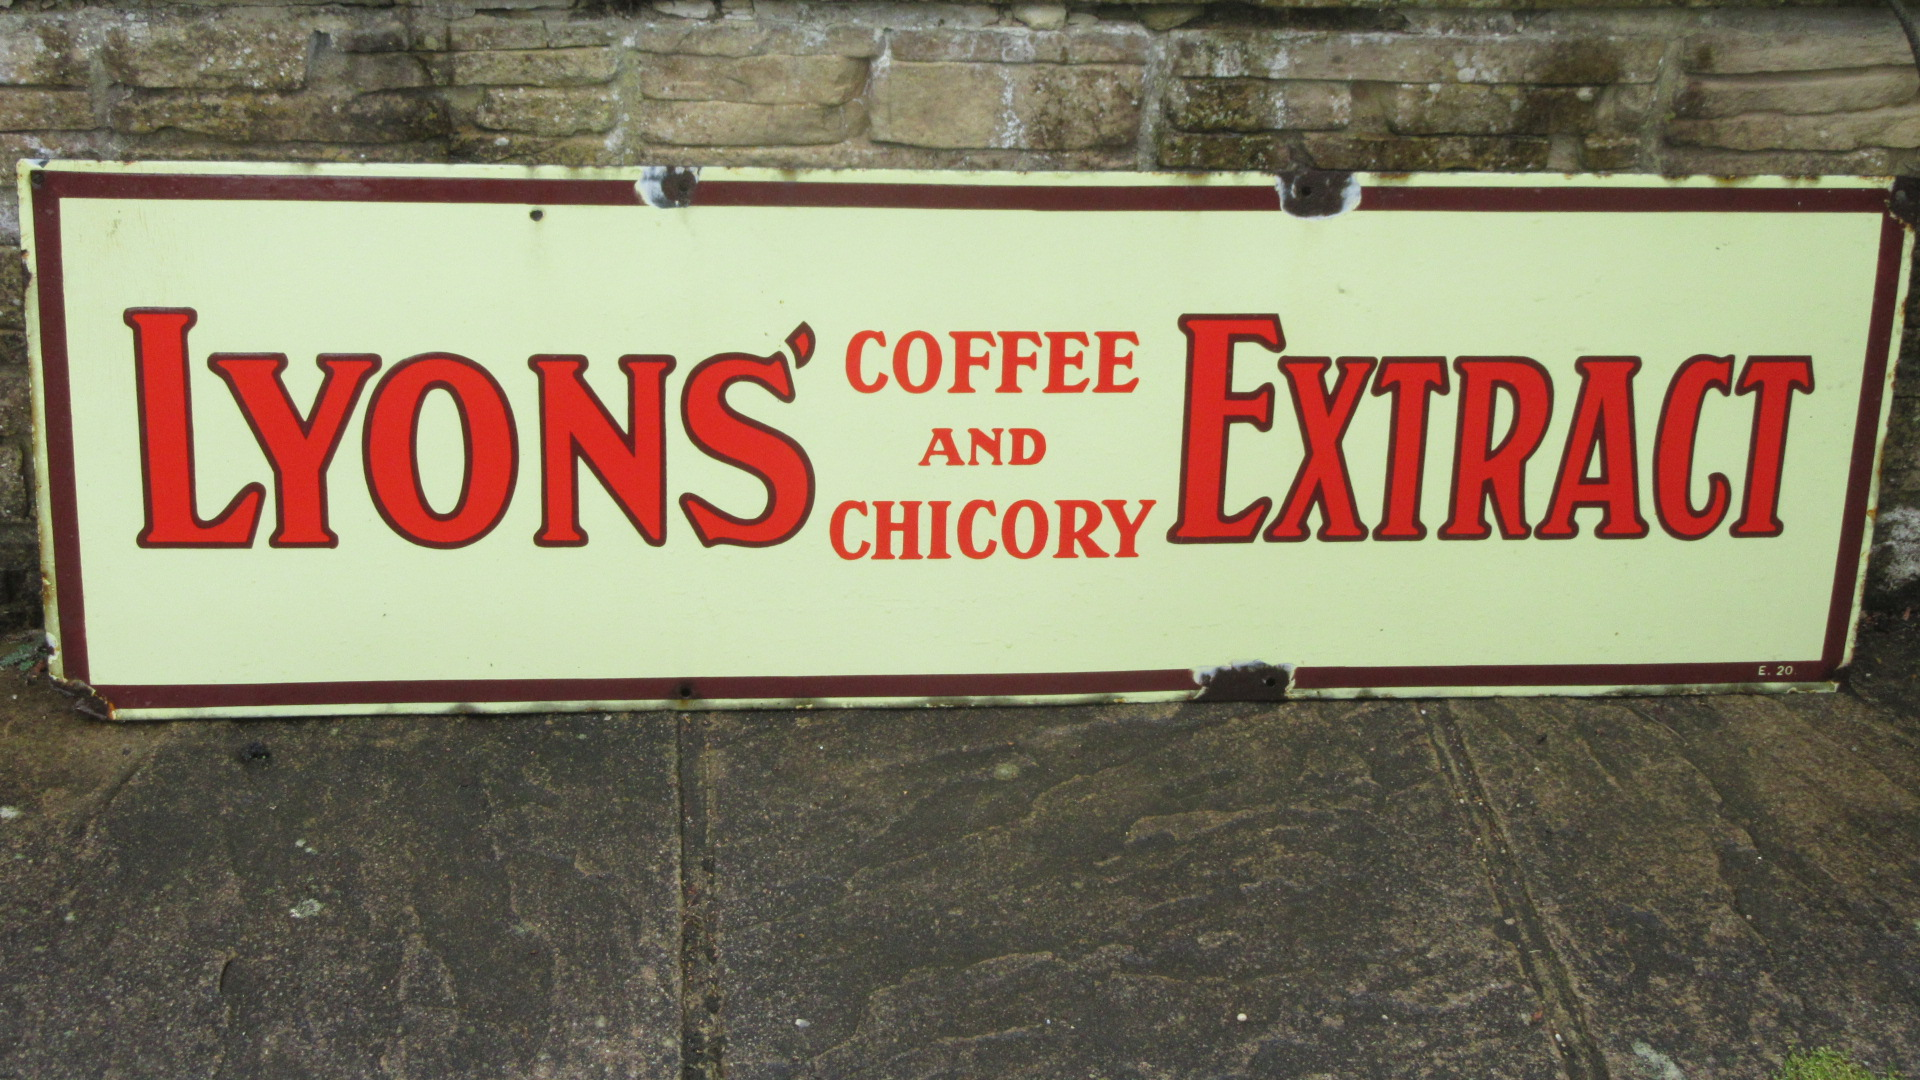 VINTAGE LYONS COFFEE EXTRACT ENAMEL ADVERTISING SIGN